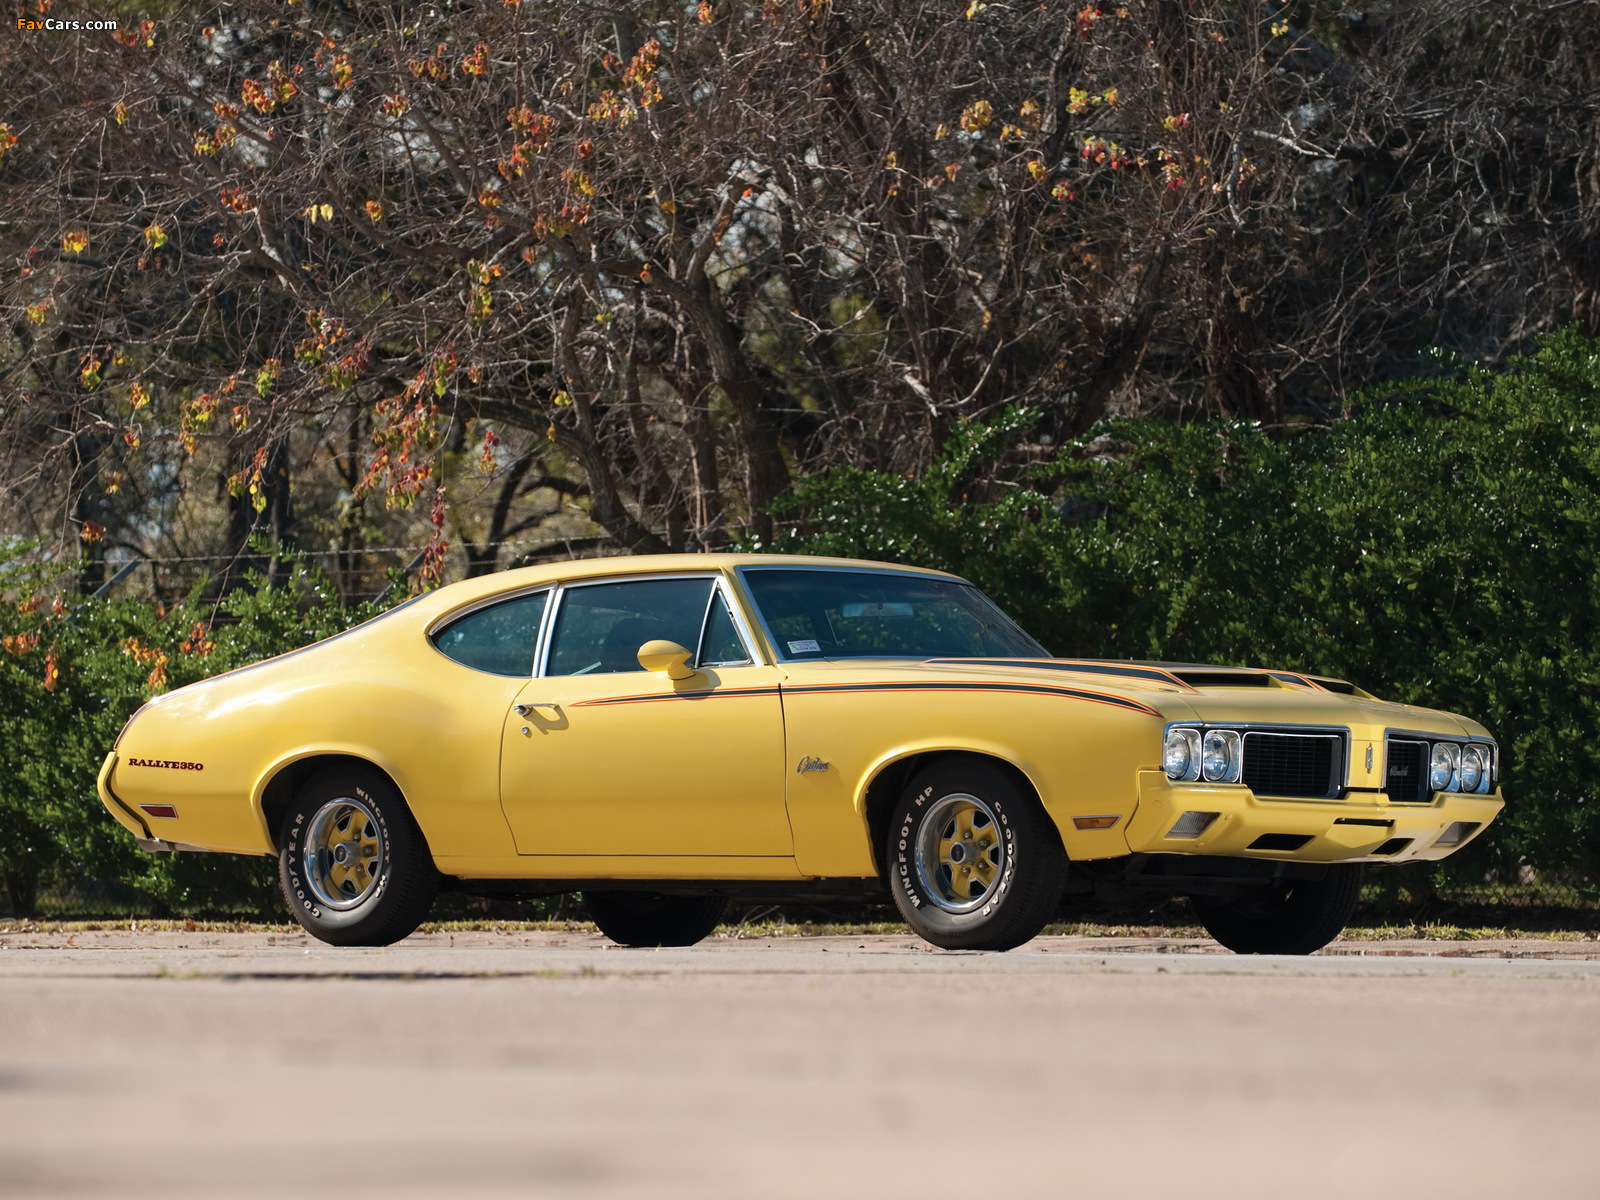 Oldsmobile Cutlass Rallye 350 Sport Coupe 1970 pictures (1600 x 1200)